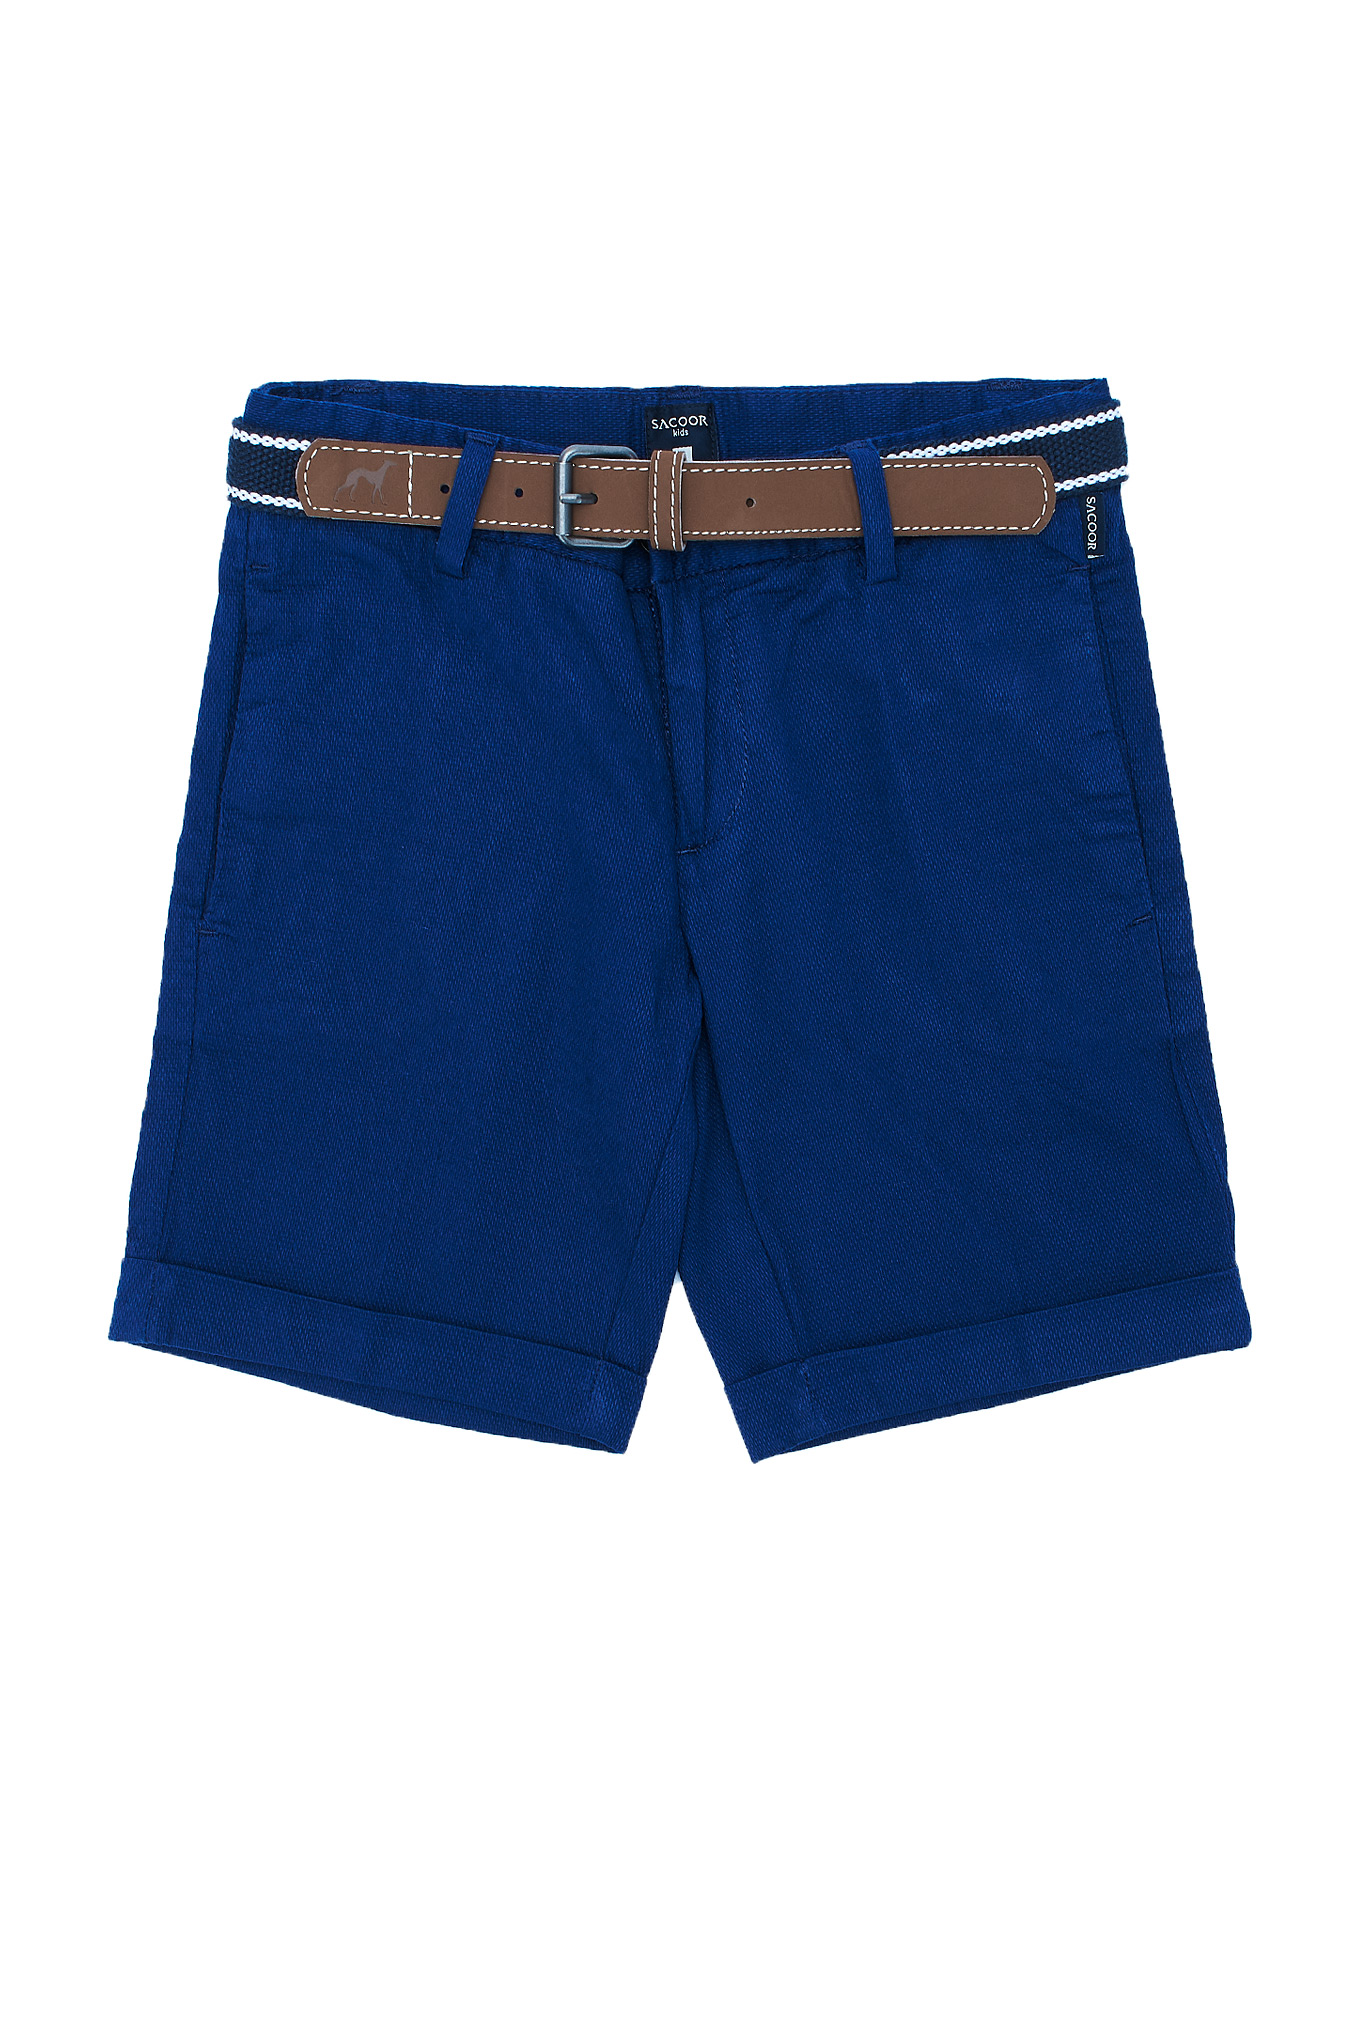 Bermuda Royal Blue Sport Boy